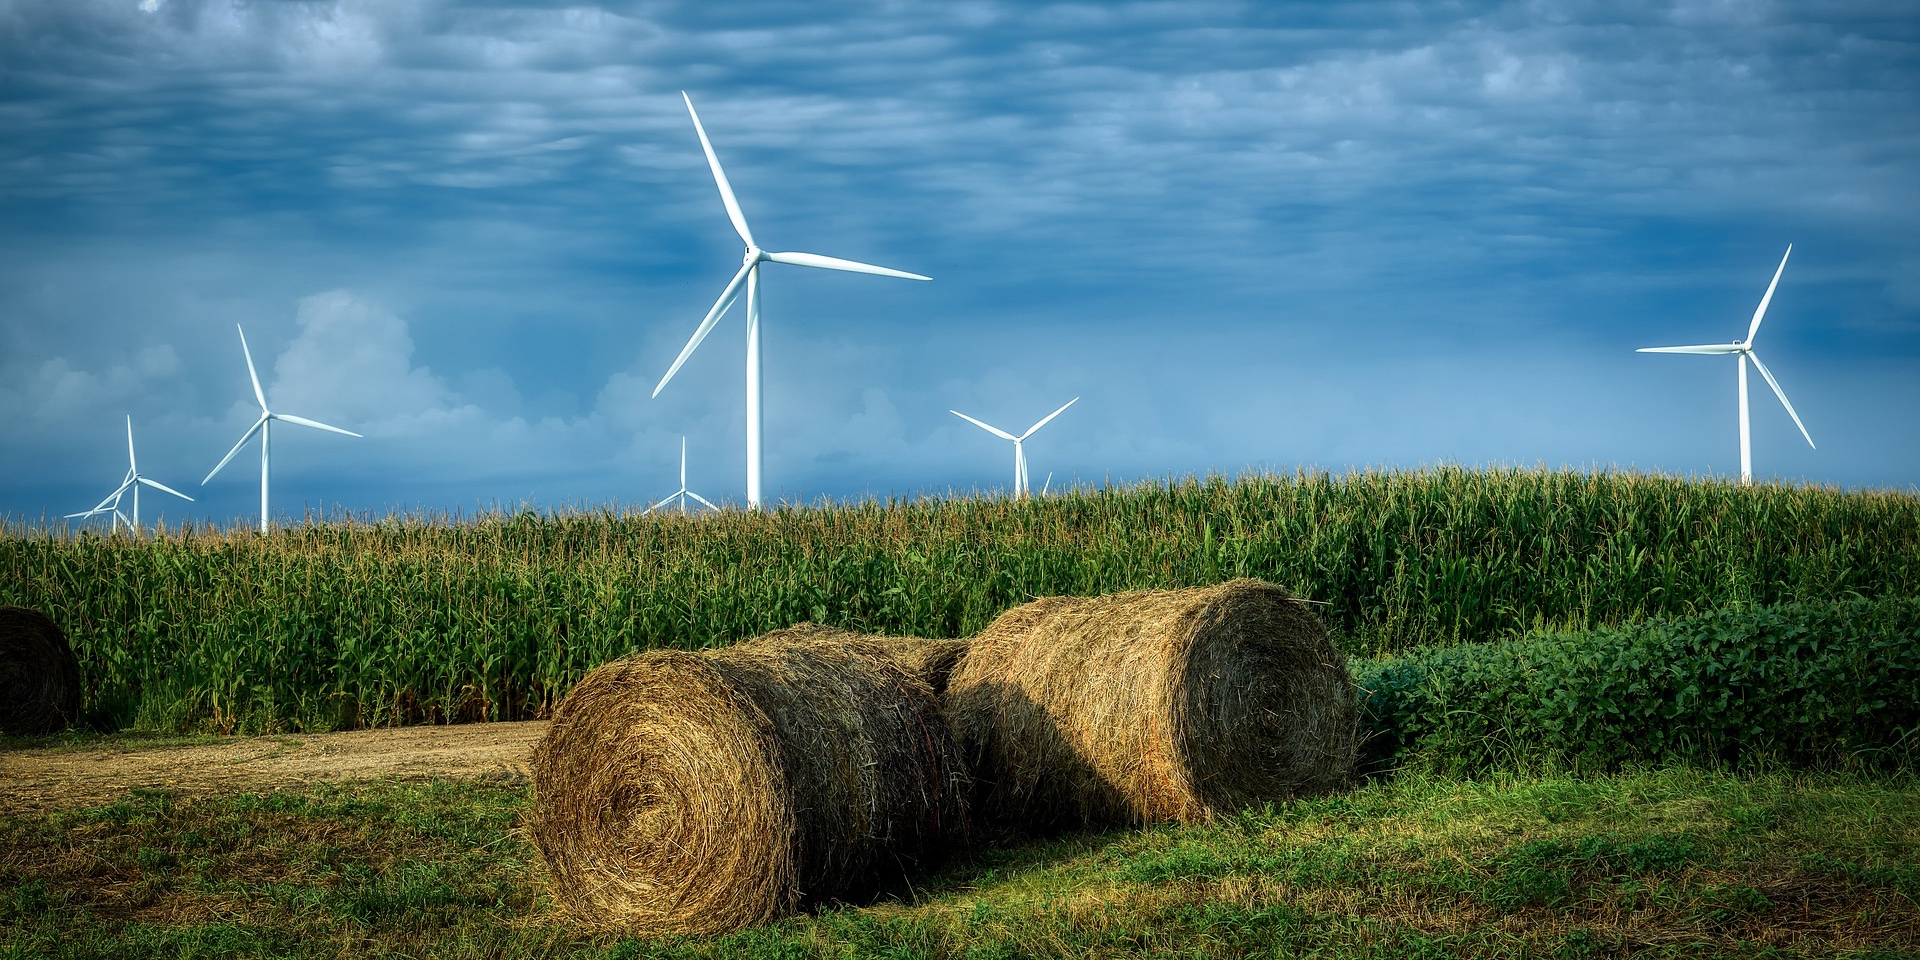 EGEB: Starbucks solar stores, Iowa voters on climate, crowdfunding a wind farm, and more